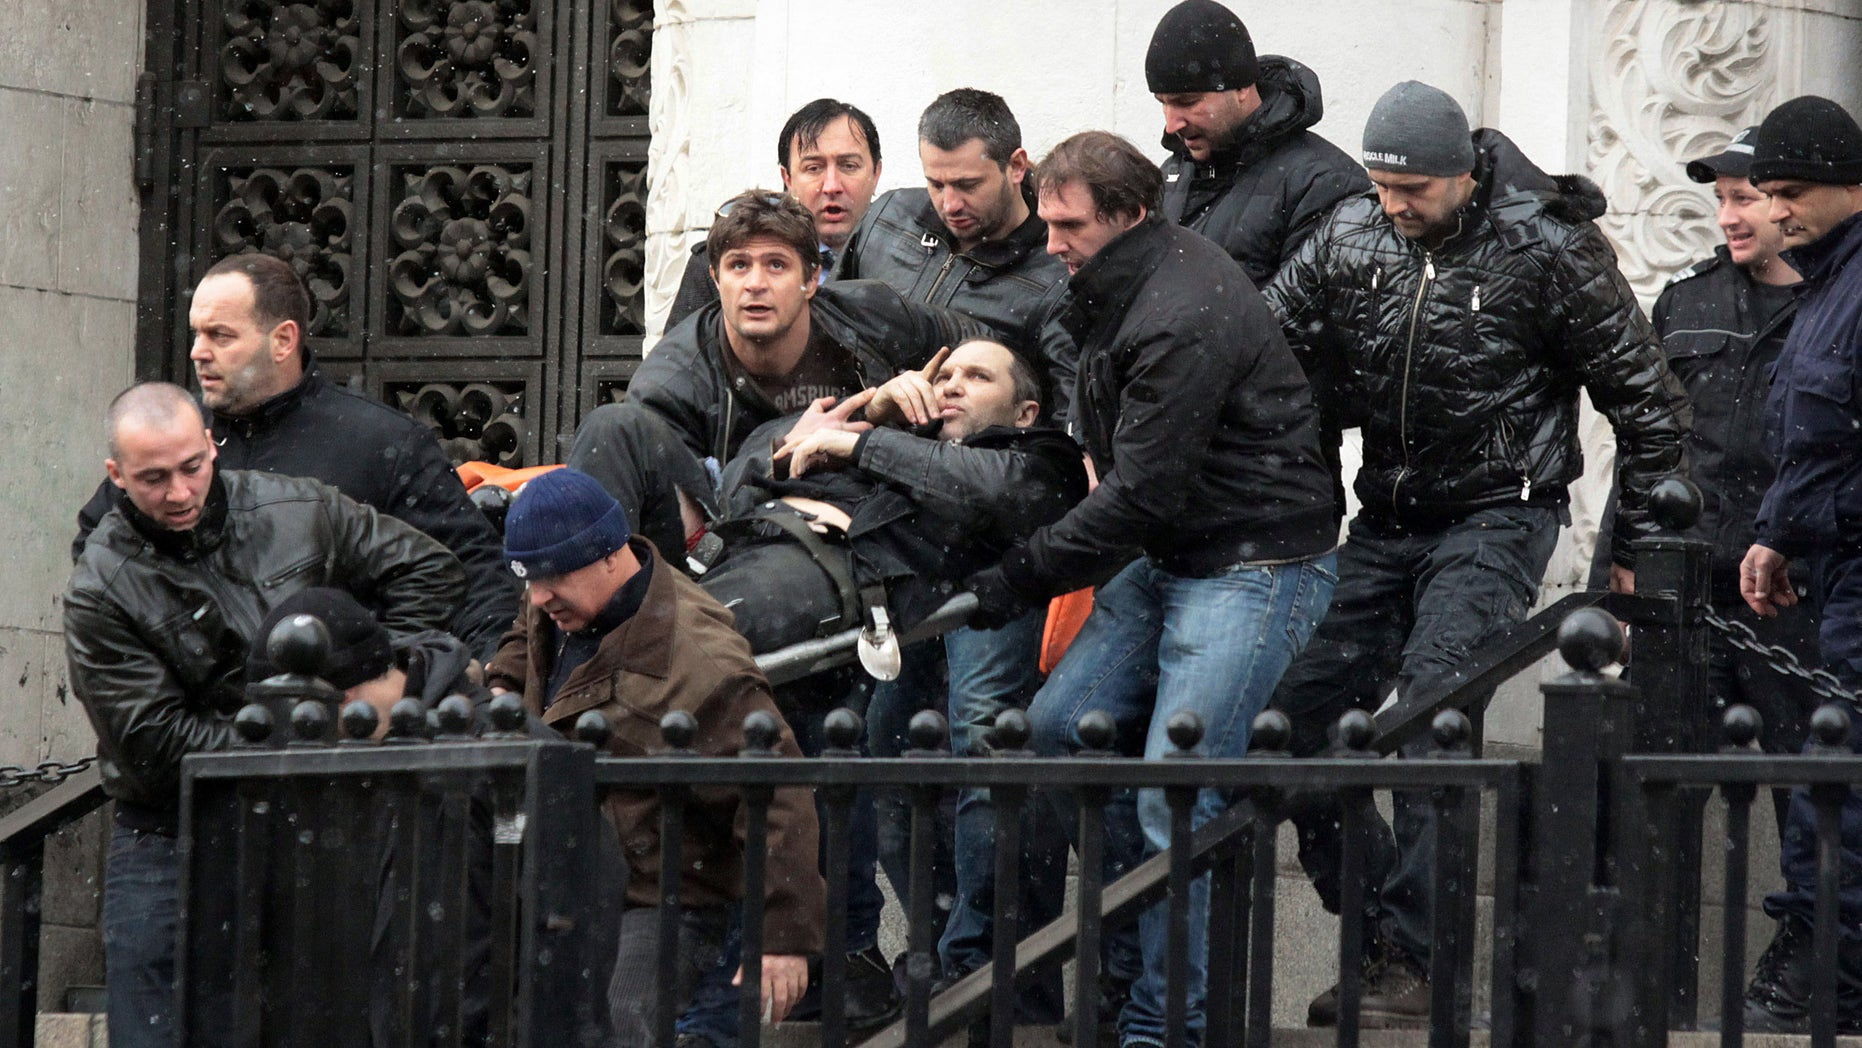 Bodyguards carry Zlatomir Ivanov, after he was shot in front of central court house in downtown Sofia, Tuesday, Jan. 29, 2013. Unidentified gunmen have shot and seriously wounded Zlatomir Ivanov who is alleged to be an underworld boss. Convicted underworld boss, Zlatomir Ivanov was on his way to the Sofia Court House on Tuesday when the shooter opened fire, probably from an opposite building, a senior police officer said. Ivanov and one of his bodyguards were both hit as they walked up the stairs to enter the court. Police say Ivanov was undergoing surgery after suffering four gunshots. (AP Photo)